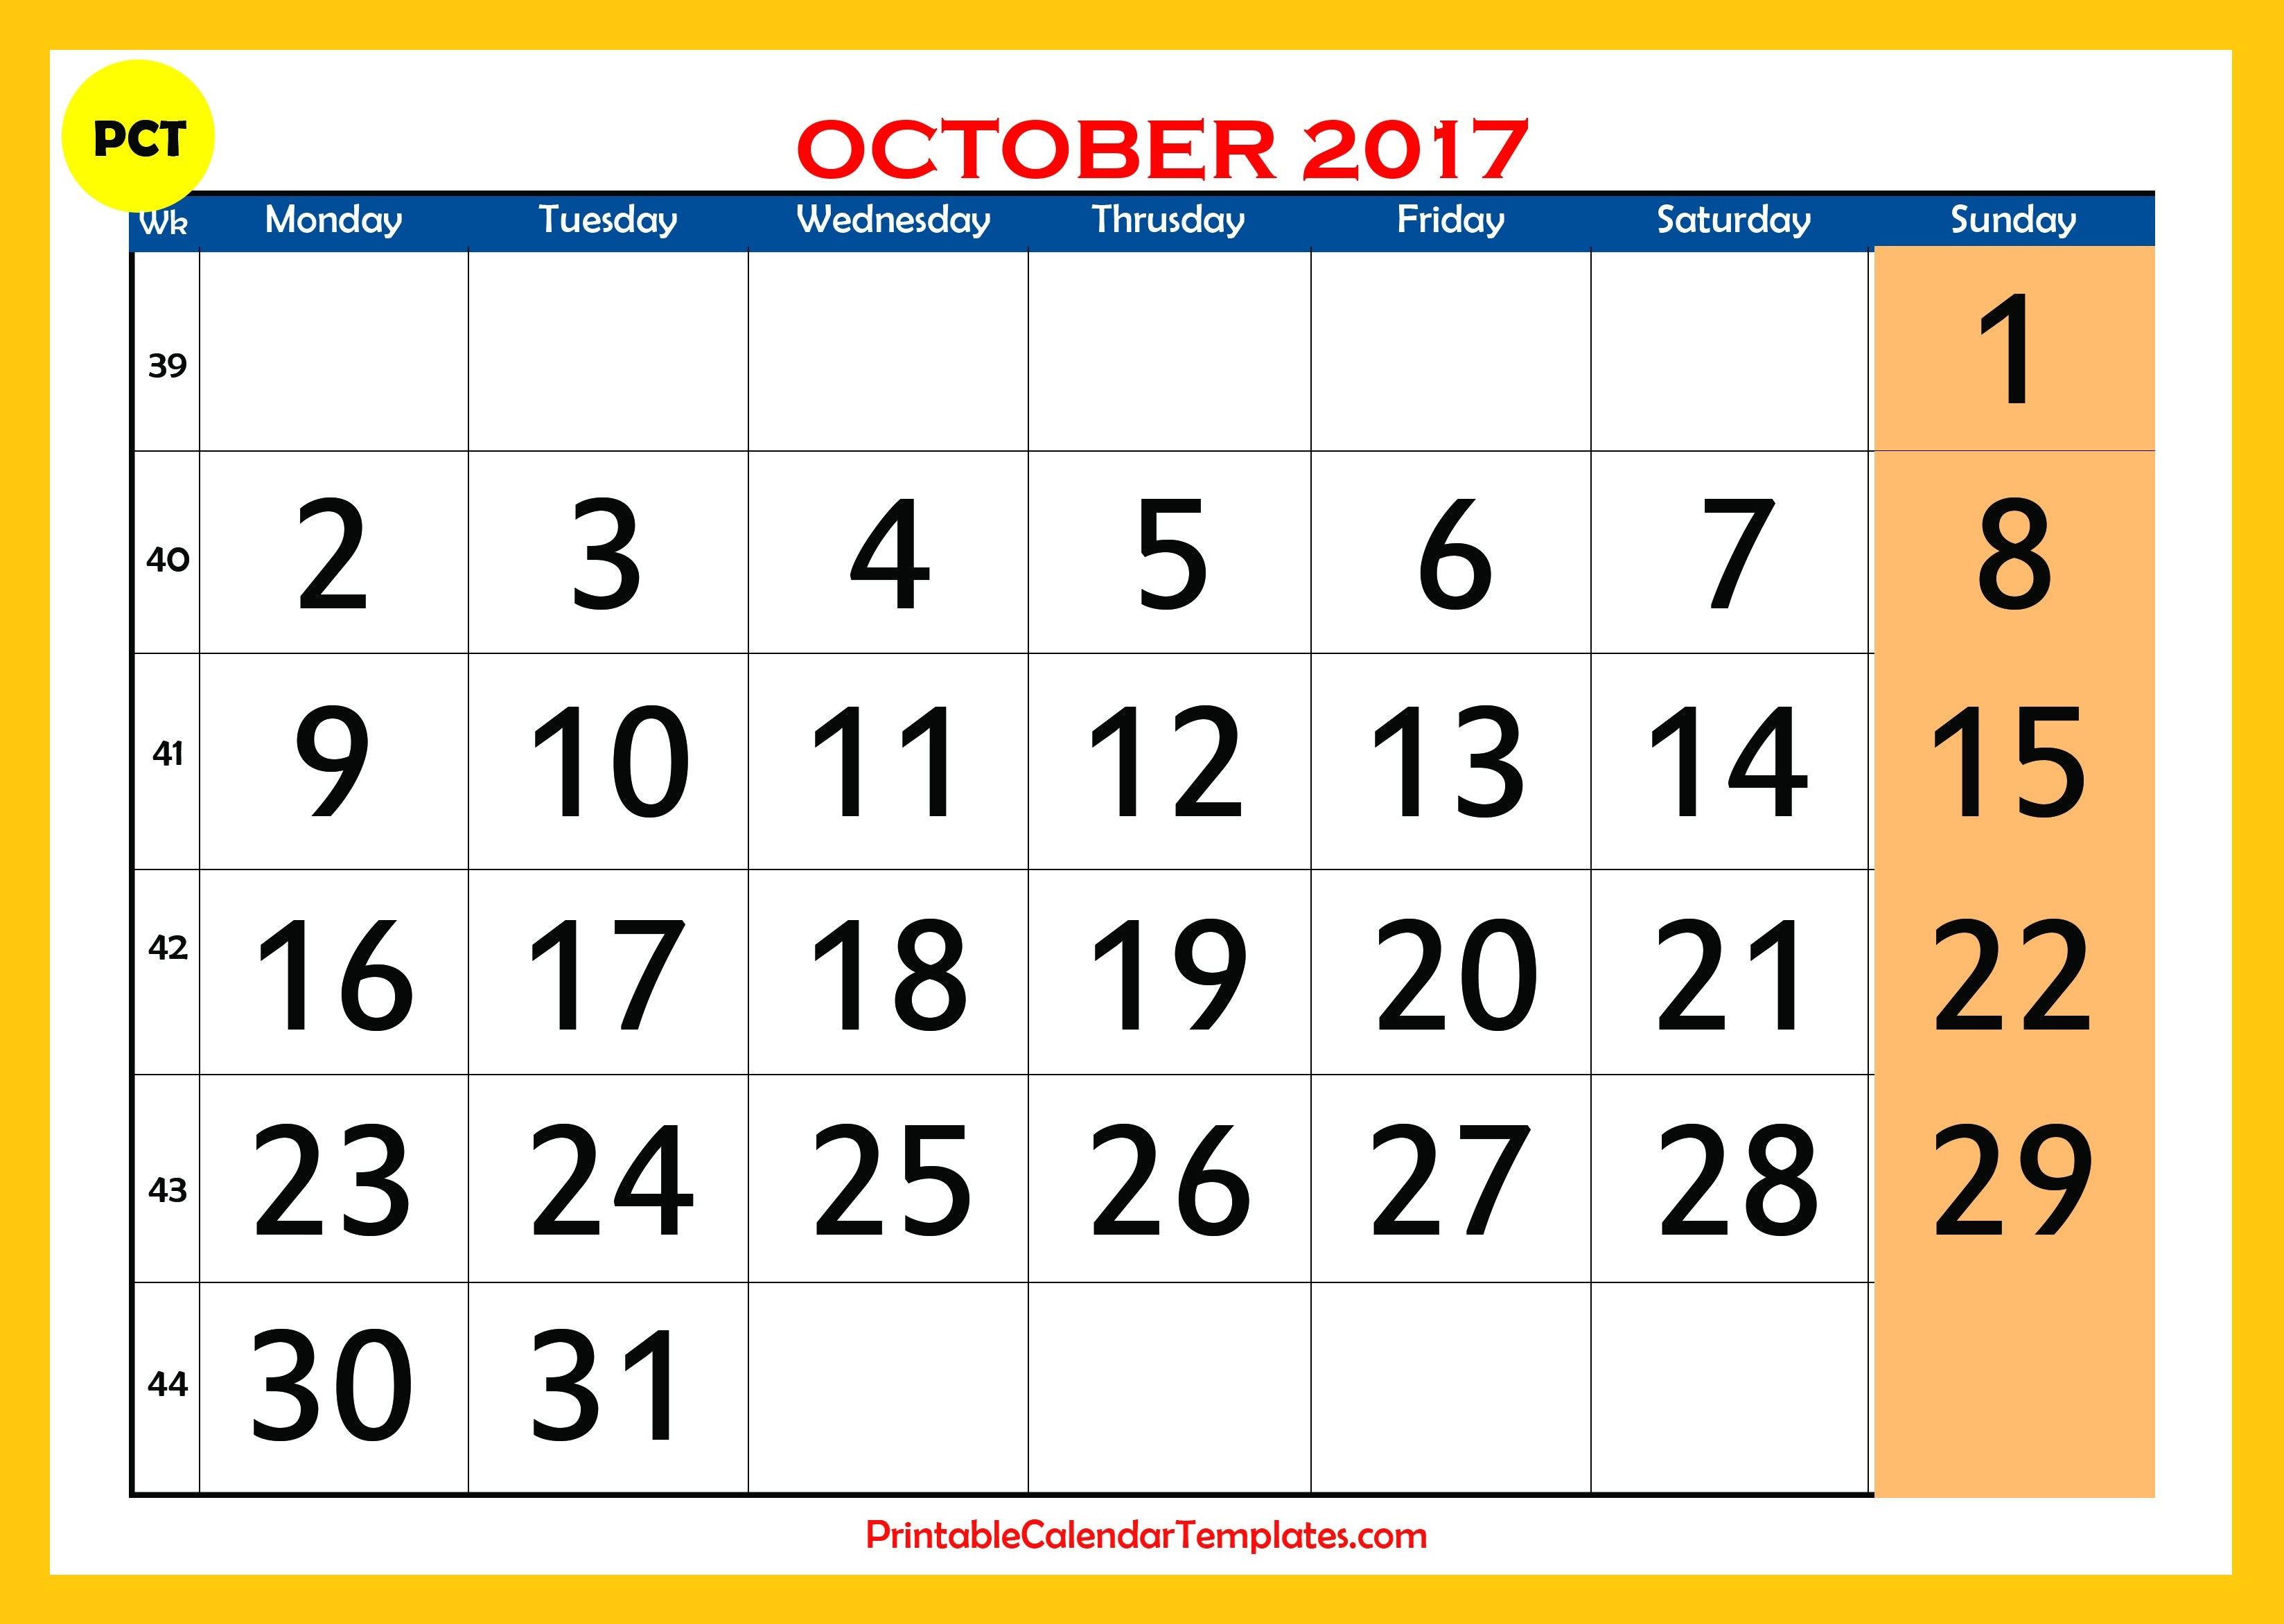 October 2017 Team Calendar for 4FBT - Blue Dragons …